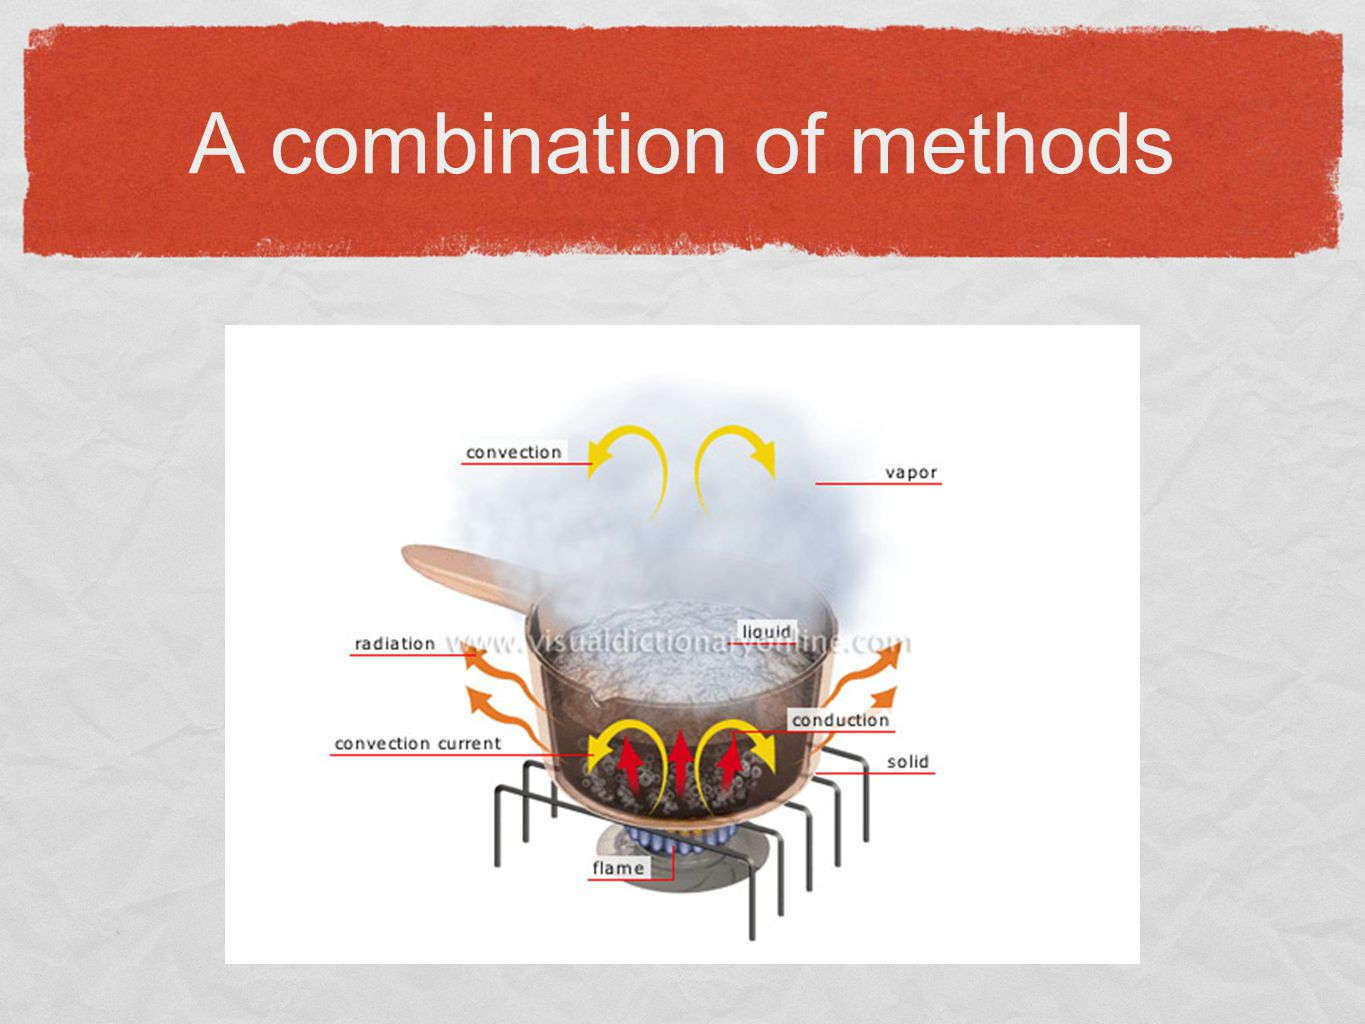 A combination of methods